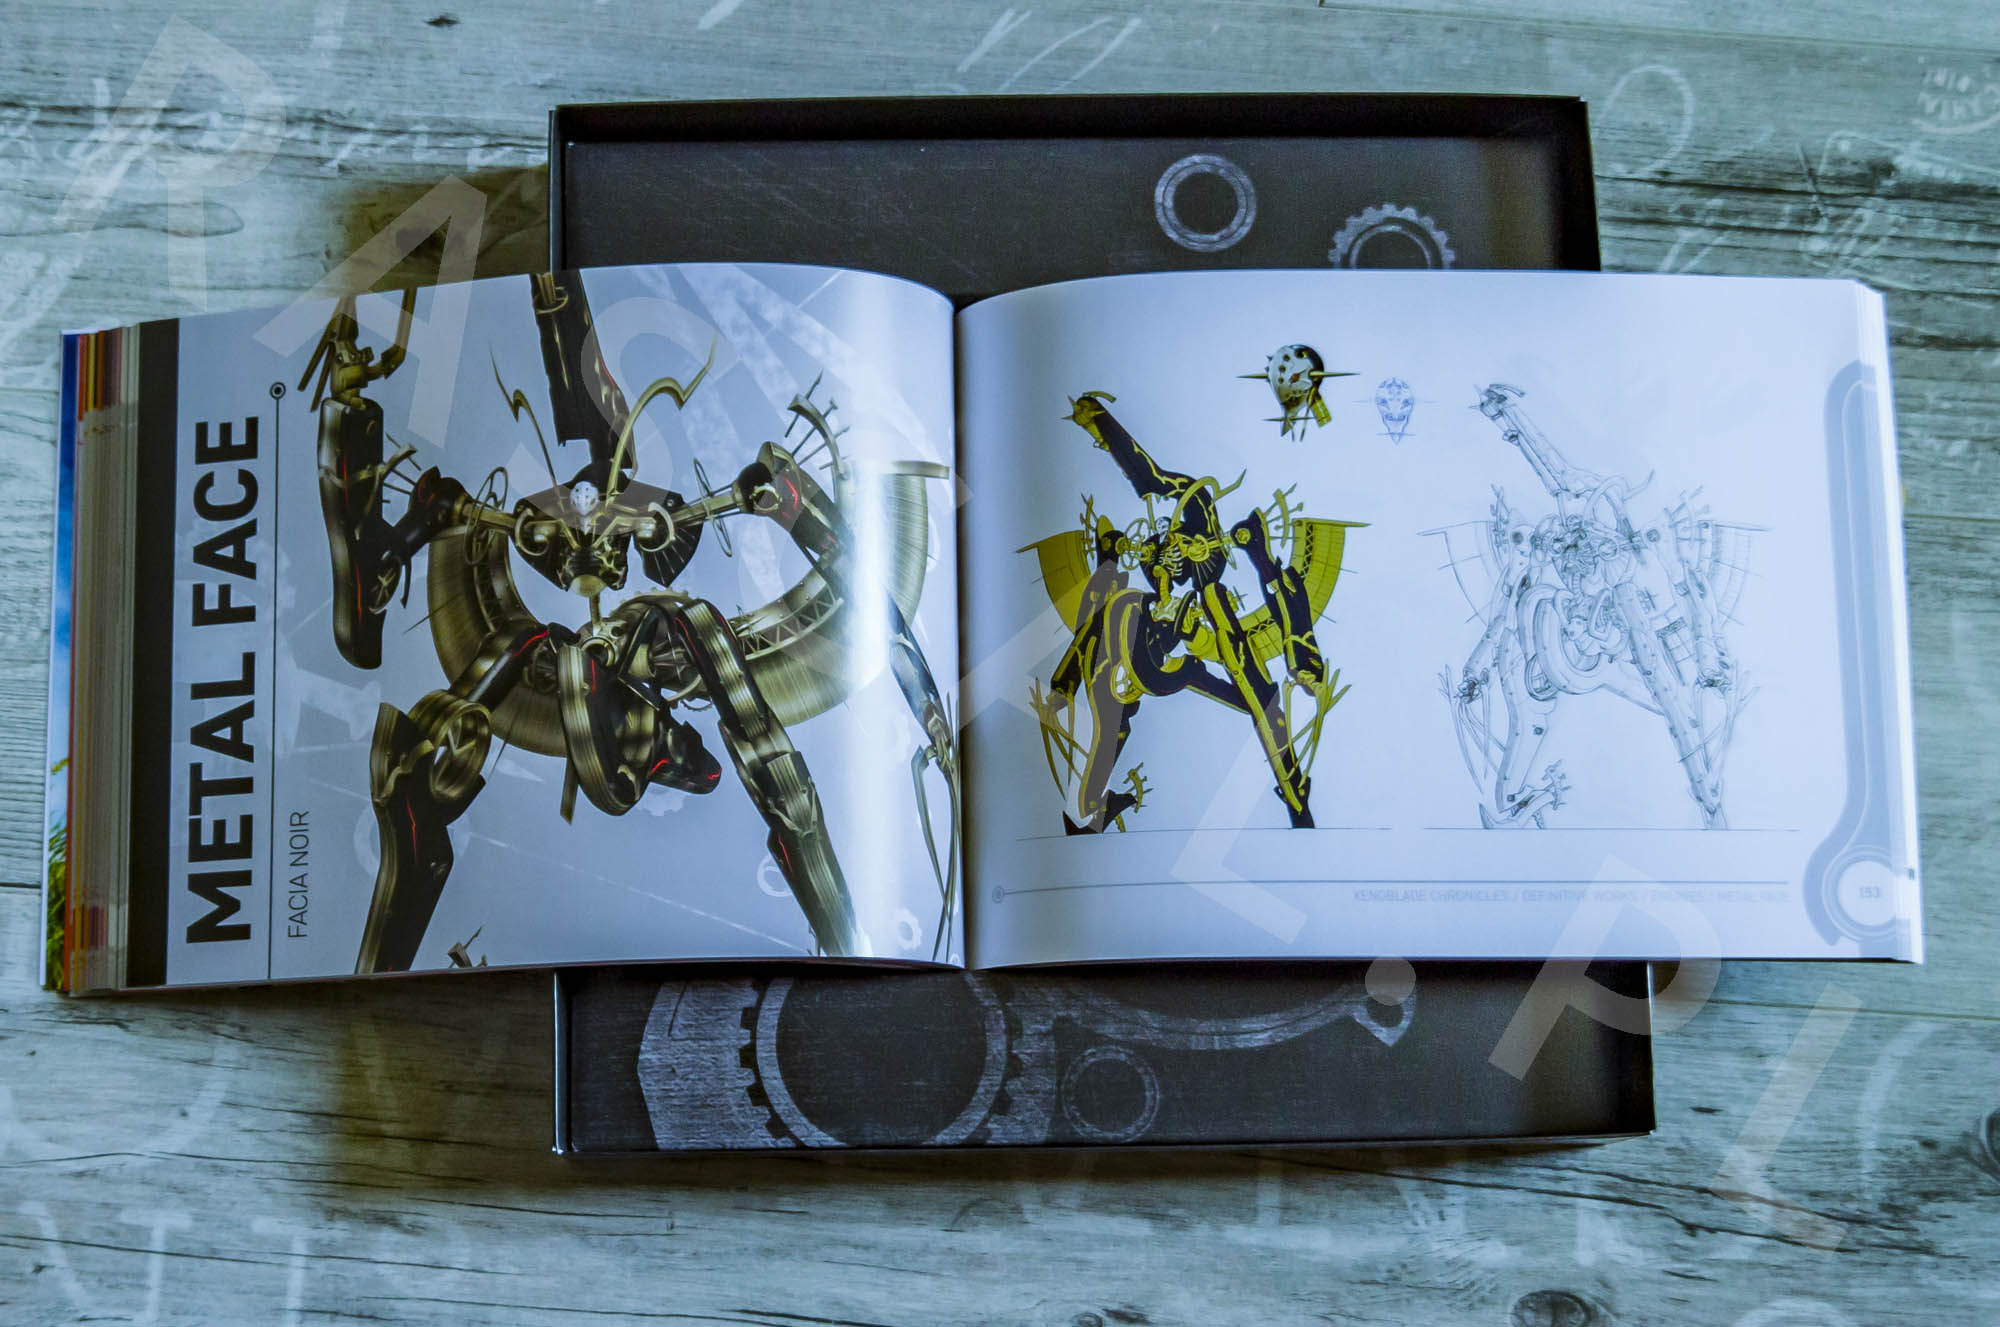 Xenoblade Chronicles Definitive Edition Collectors Set - Artbook - 18 - Wrogowie